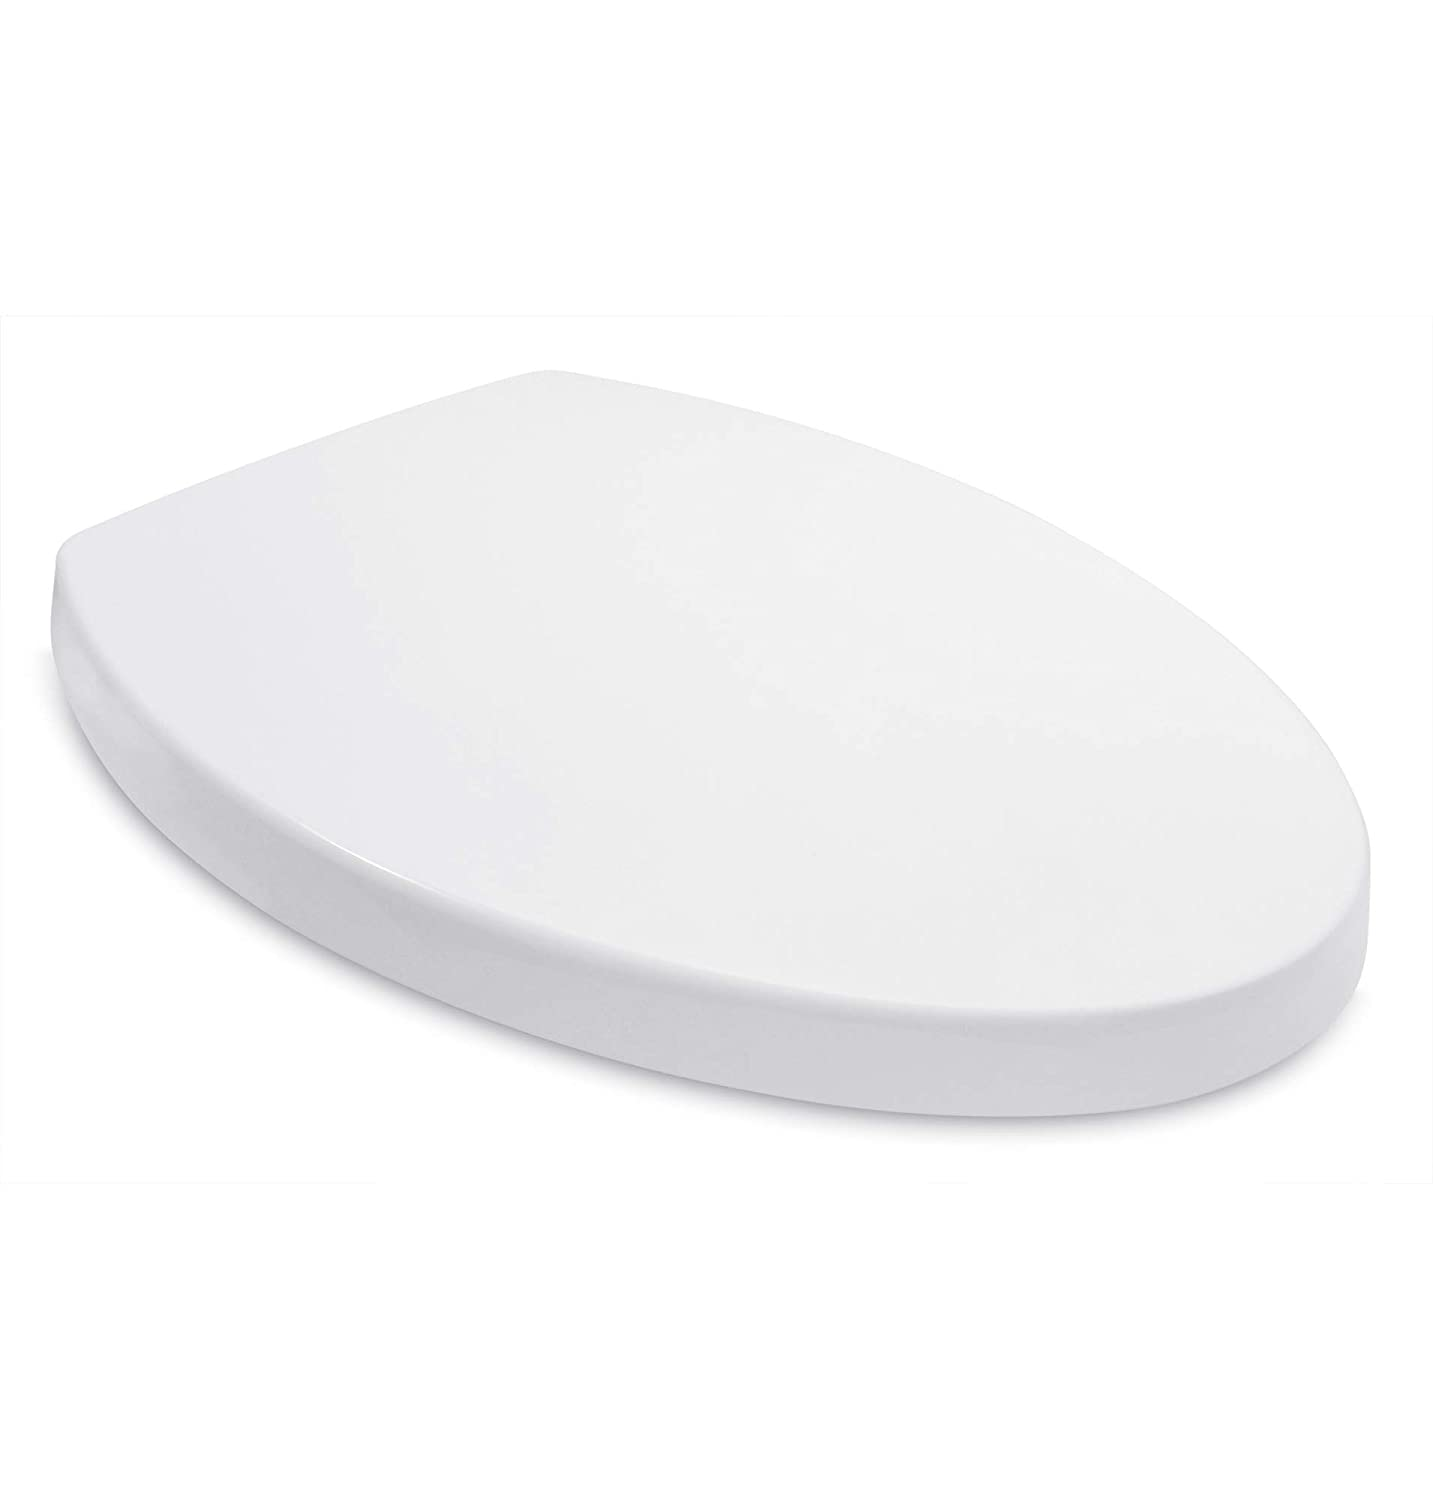 Excellent Bath Royale Br631B 00 Premium Elongated Family Toilet Seat With Built In Child Seat And Cover White Slow Close Quick Release For Easy Cleaning Pabps2019 Chair Design Images Pabps2019Com